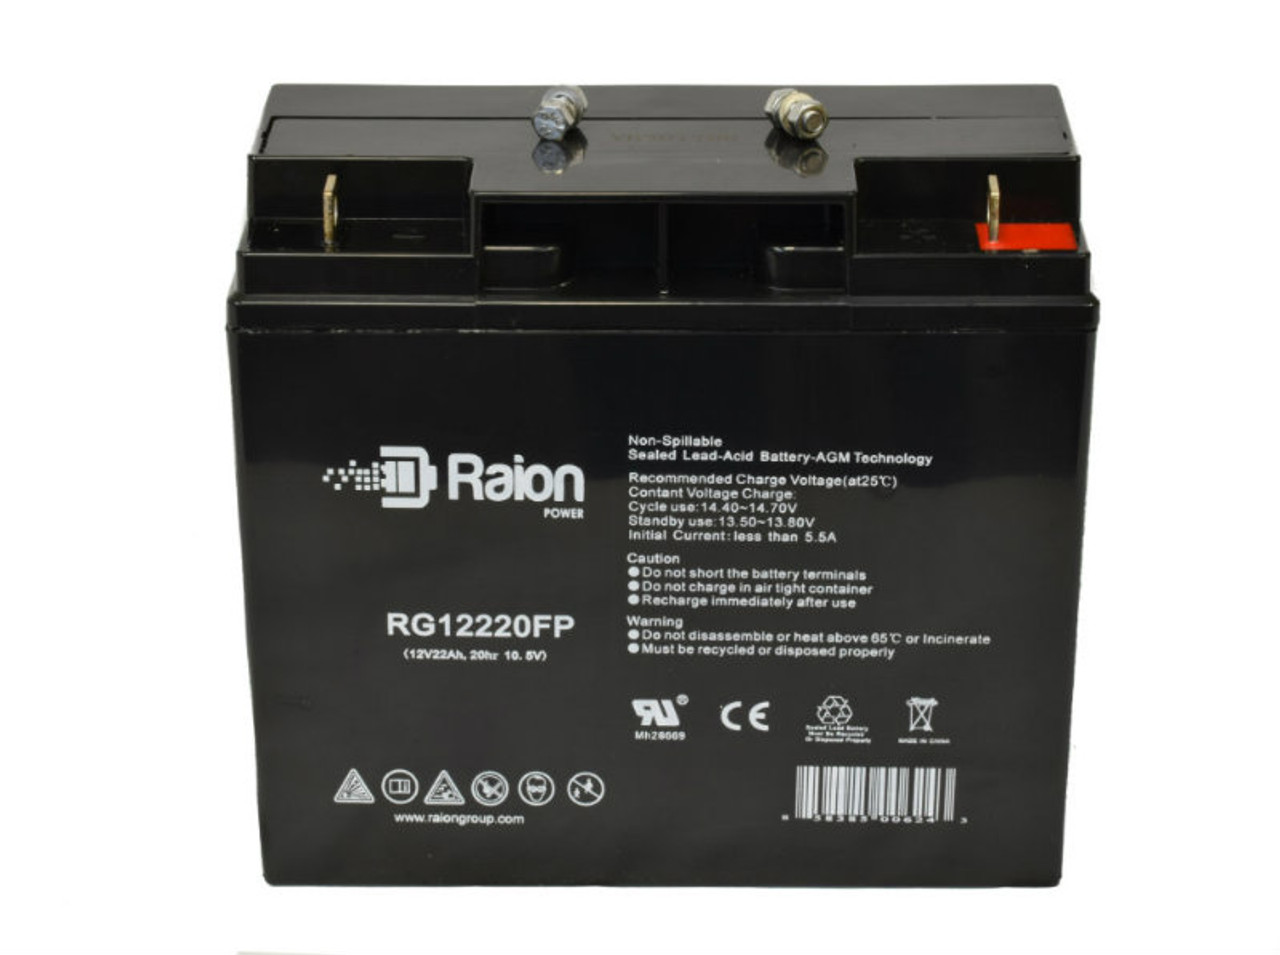 RG12220FP Sealed Lead Acid Battery Pack For IMC Heartway Comet P53 Mobility Scooter